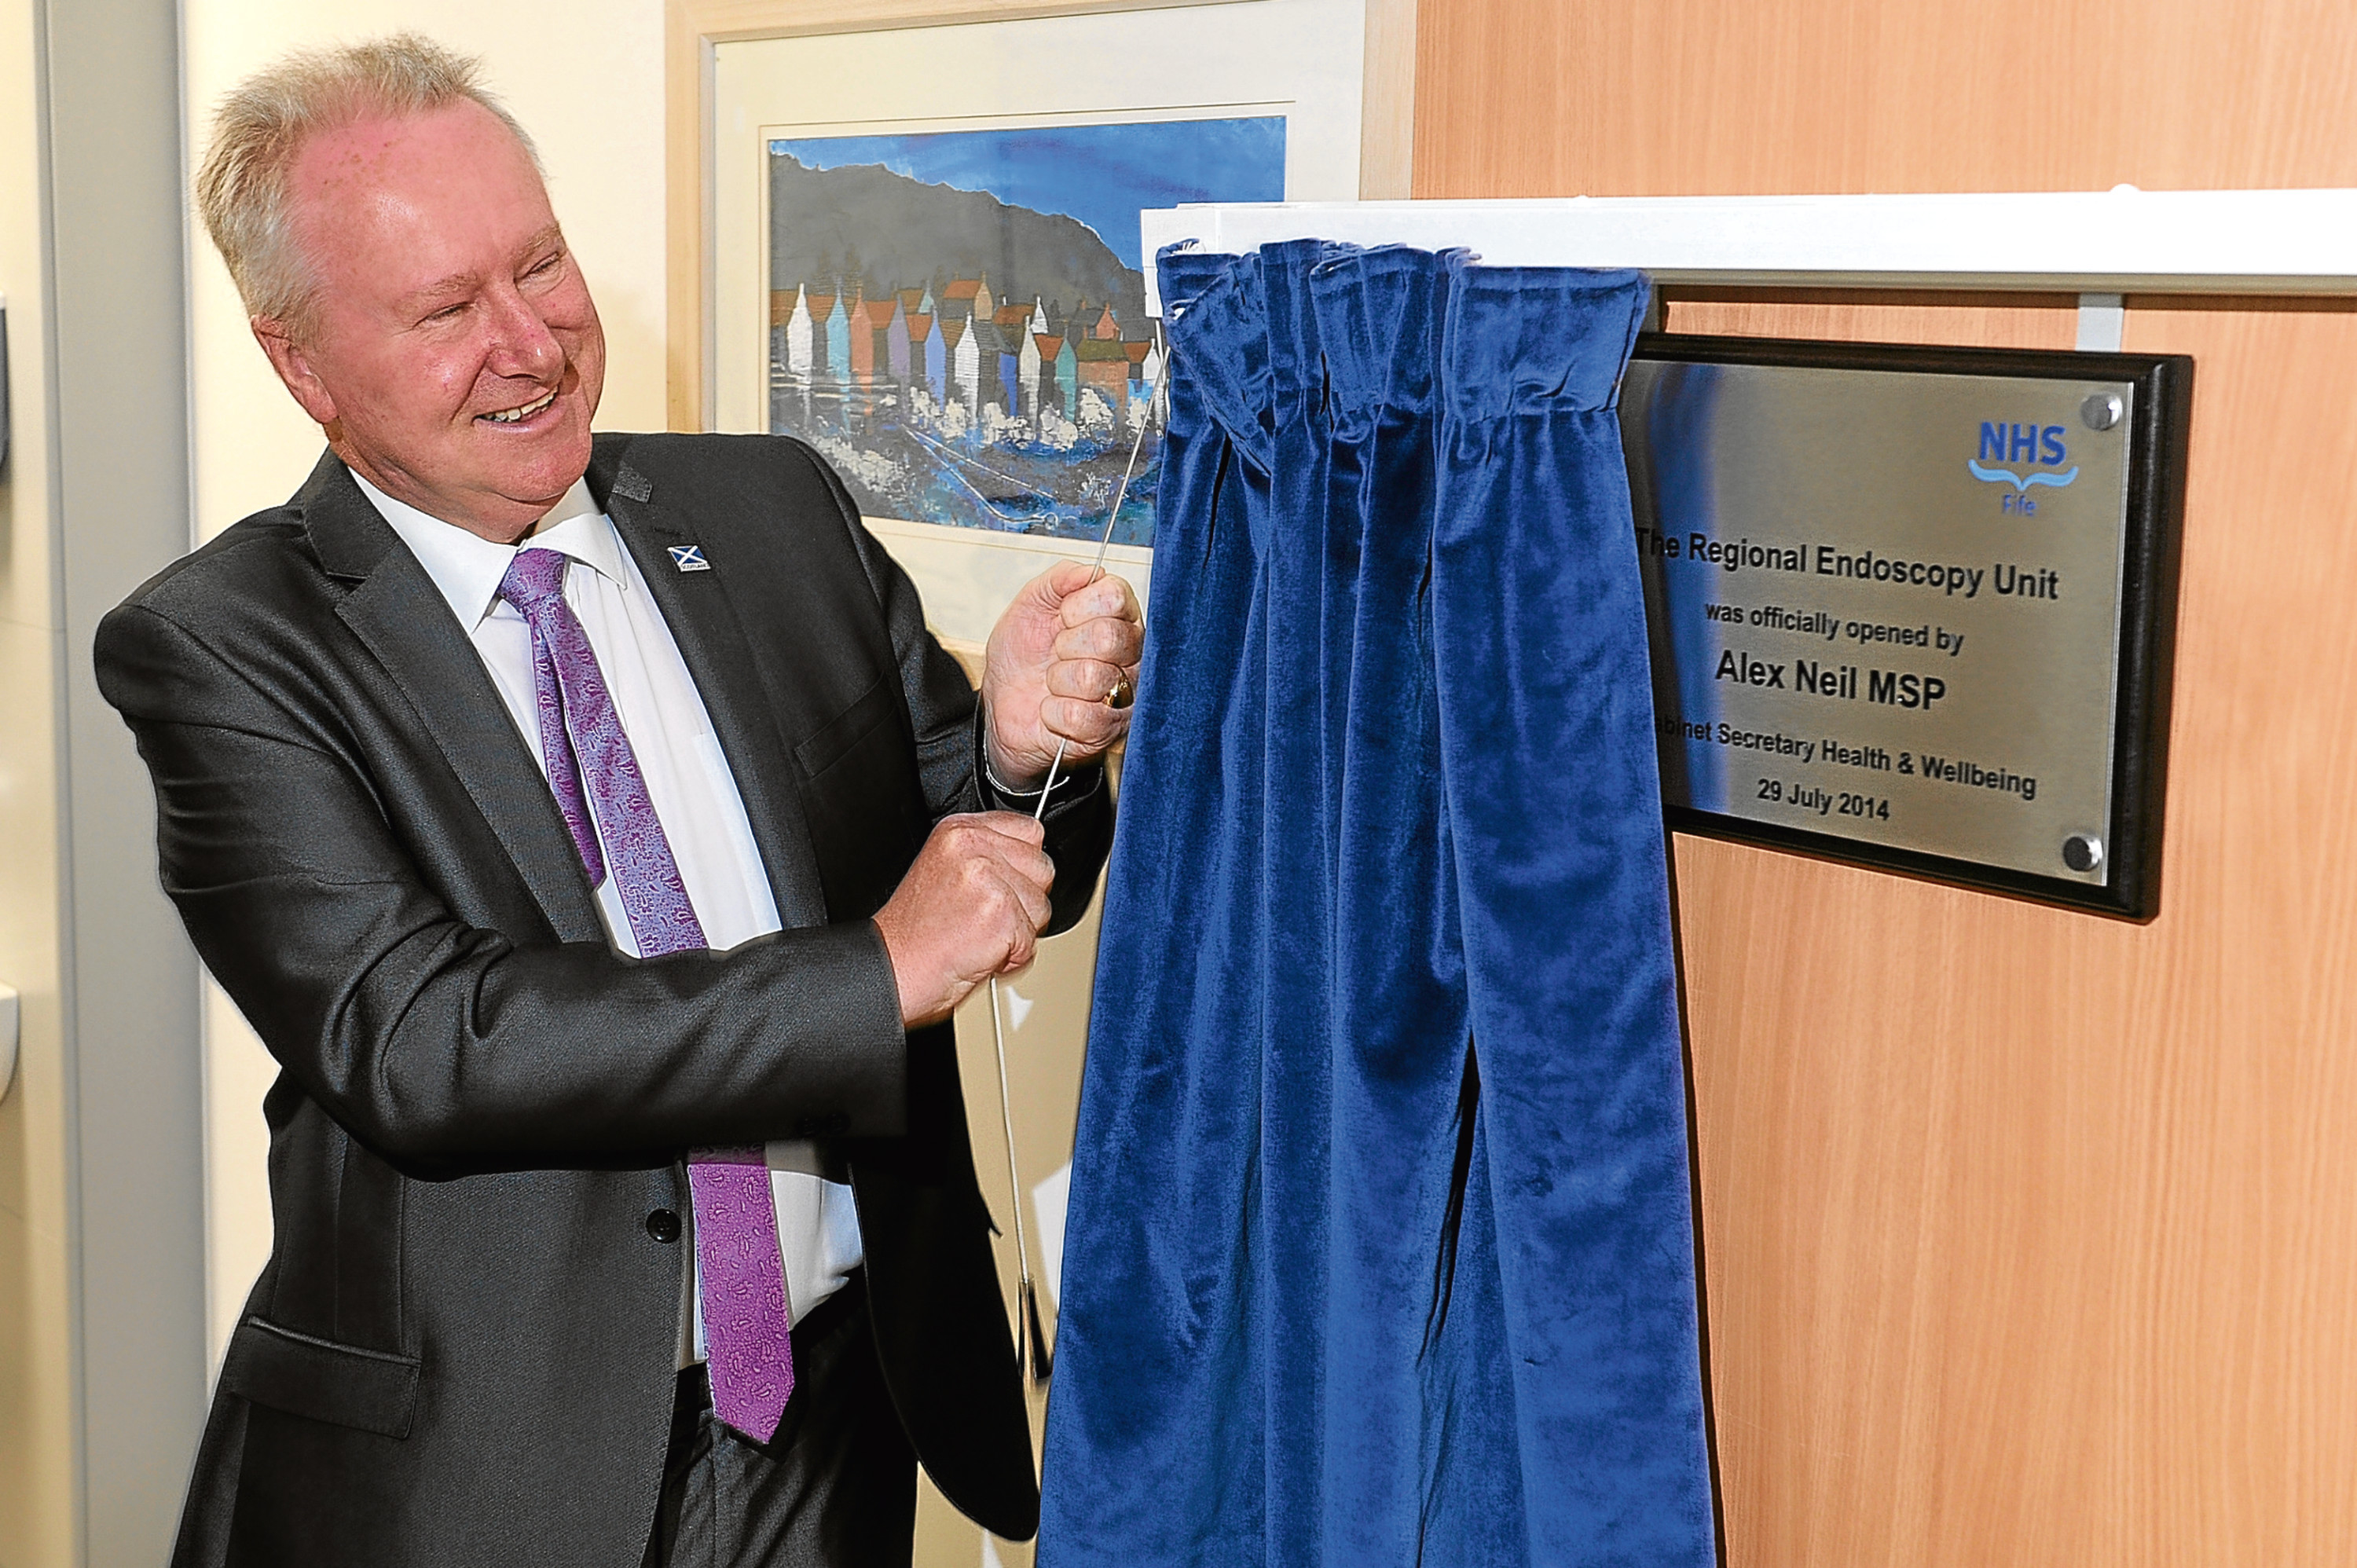 Kim Cessford - 29.07.14 - pictured in the new endoscopy suite at Queen Margaret Hospital, Dunfermline which was officially opened by Cabinet Secretary for Health Alex Neill MSP - Alex Neill unveils the plaque marking the official opening